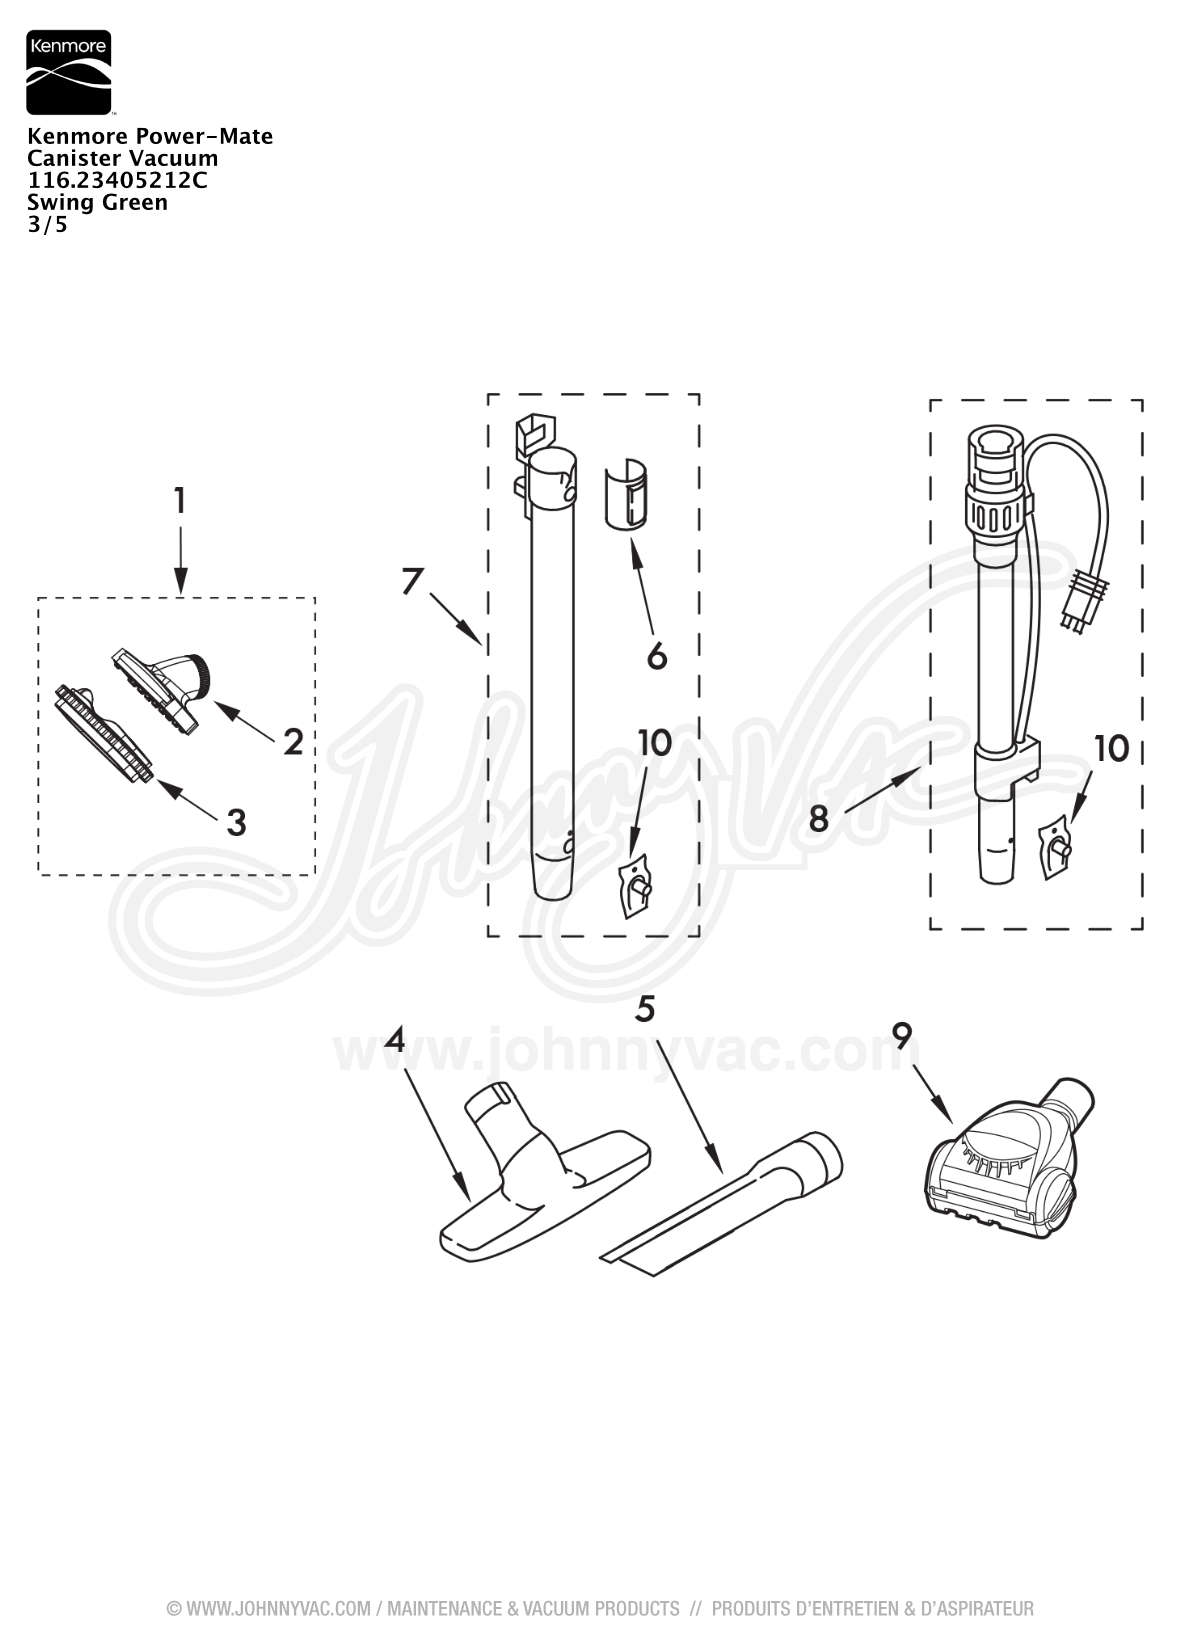 Kenmore Powermate Canister Vacuum Wiring Diagram Schematic Exploded View For Models